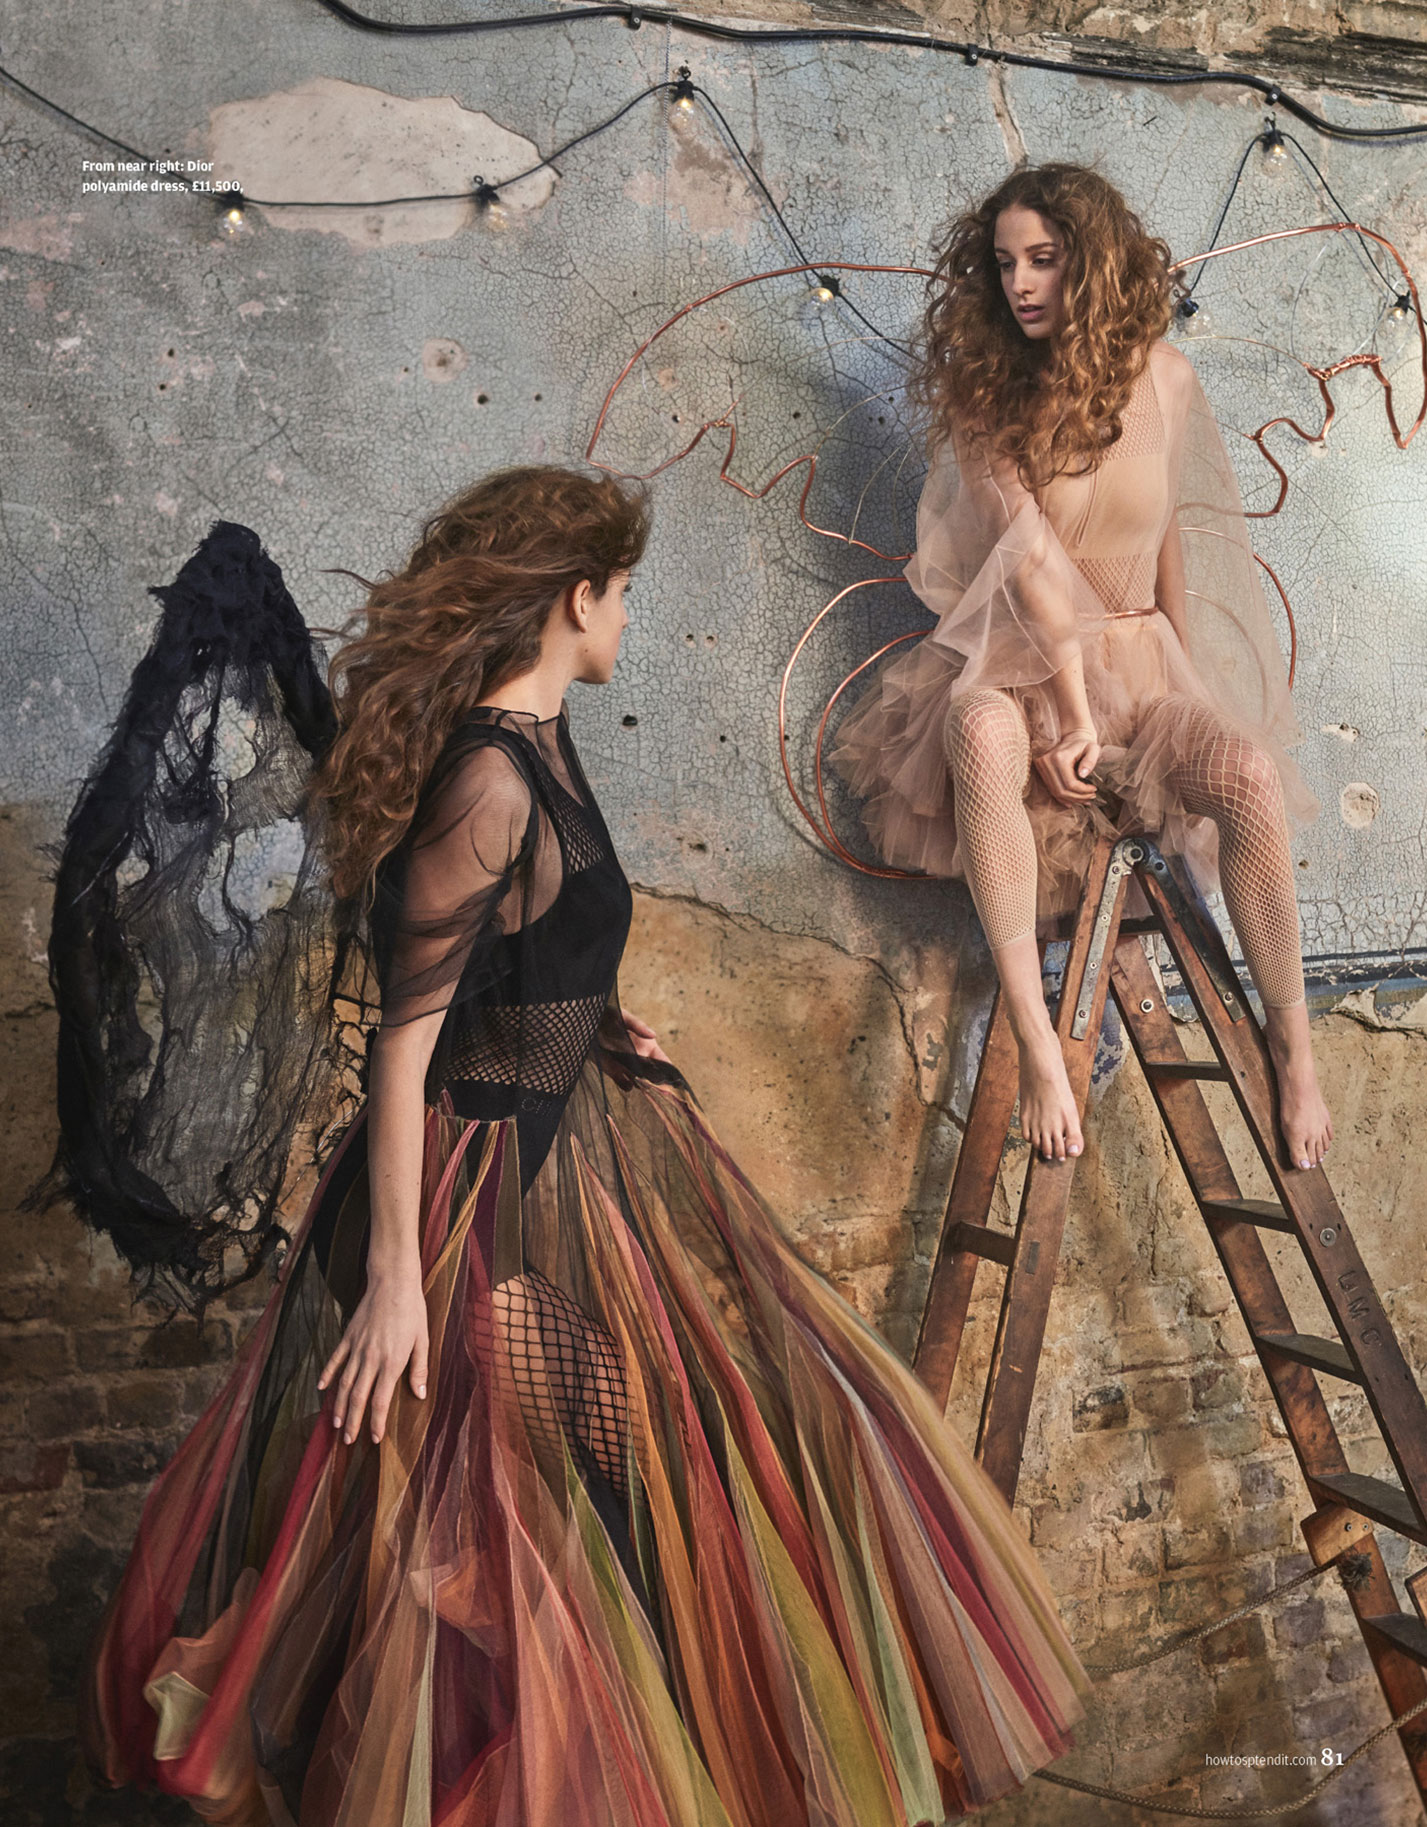 Wings of Desire / Coco Konig by Mariano Vivanco / Financial Times How To Spend It march 2019